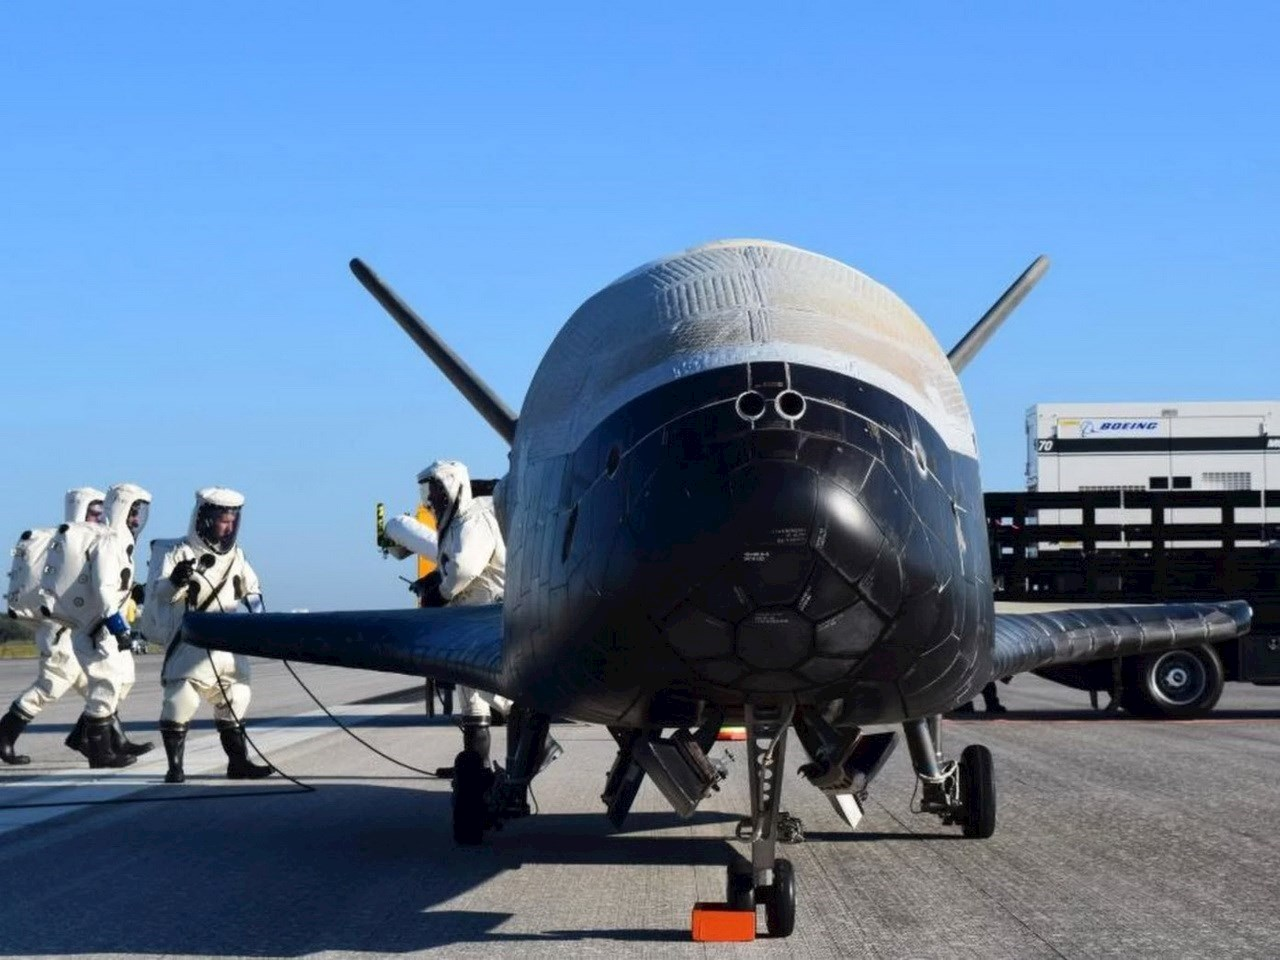 The US Air Force's 4th mystery X-37B space plane mission